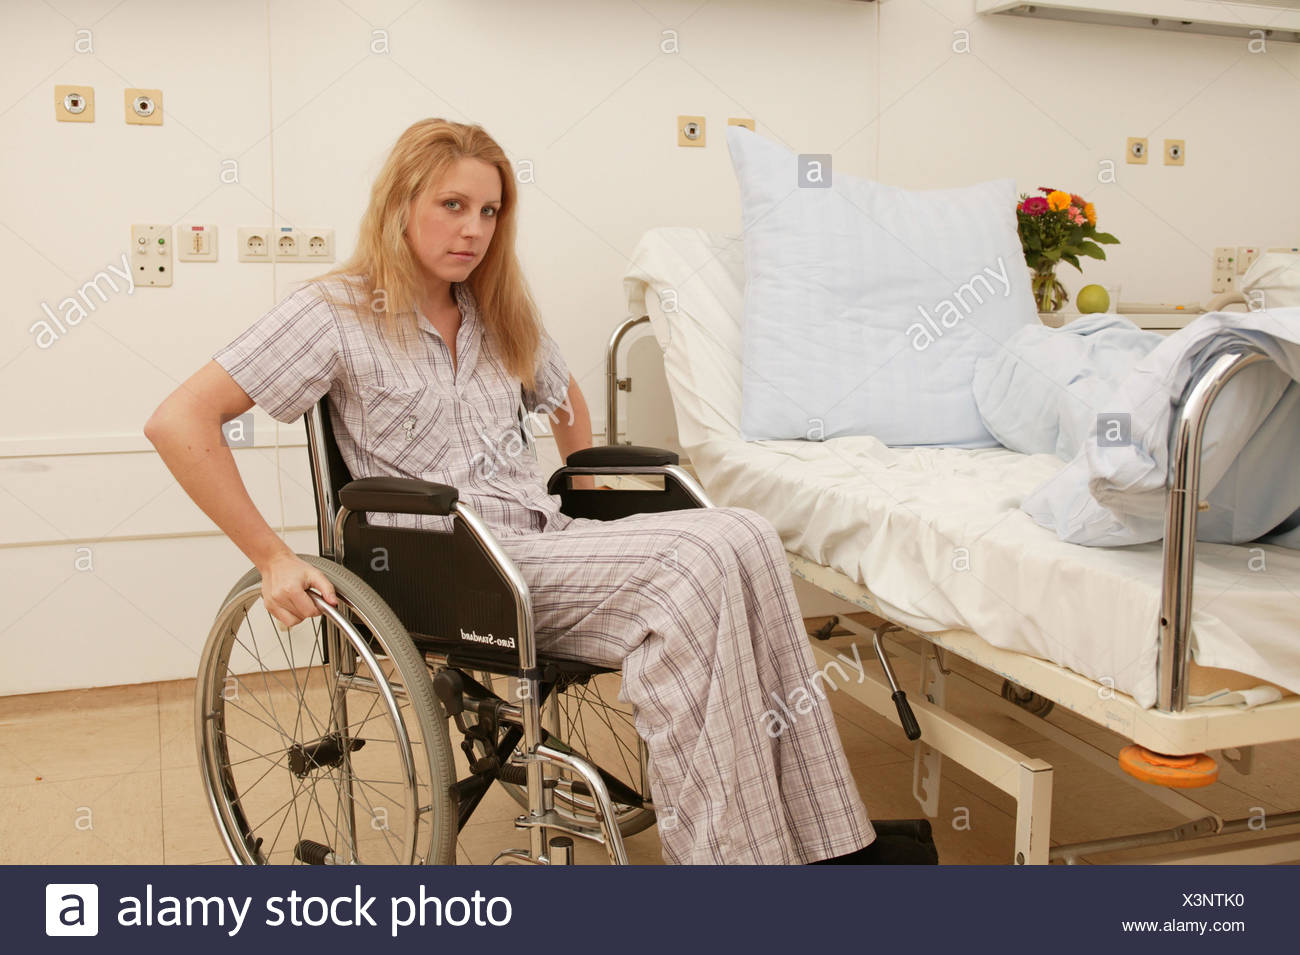 Wards, patient, invalid, wheel chair, sit, suffer sadly, medicine, hospital, clinic, hospital, sickbed, bed, disease, hospitalisation, convalescense, health, woman, young, 20-30 years, invalid, feet, impediment, hemiplegia, destiny, grief, worries, facial play, emotion, ailment, Ti7 - Stock Image